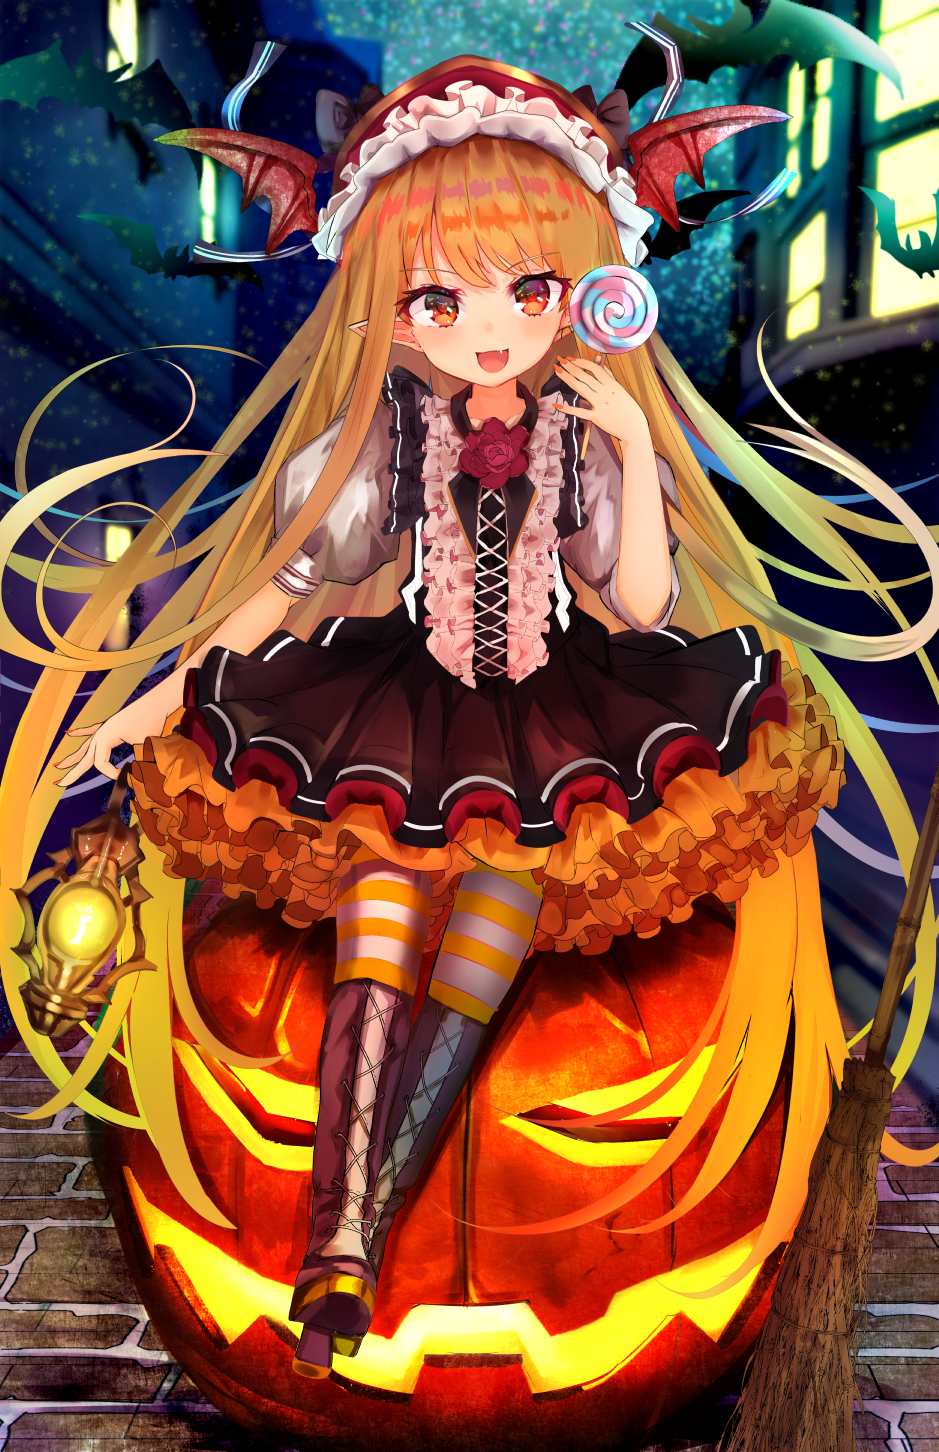 1girl :d animal bamboo_broom bangs bat bat_wings blonde_hair blurry blurry_background boots bow broom brown_bow brown_footwear brown_skirt brown_vest building candy commentary_request cross-laced_footwear depth_of_field eyebrows_visible_through_hair fang fingernails flower food frills full_body glowing granblue_fantasy halloween hand_up head_tilt head_wings high_heel_boots high_heels highres holding holding_food holding_lantern holding_lollipop jack-o'-lantern lace-up_boots lantern lollipop long_hair marisayaka nail_polish night open_mouth outdoors pantyhose pleated_skirt pointy_ears puffy_short_sleeves puffy_sleeves red_eyes red_flower red_nails red_rose red_wings rose shingeki_no_bahamut shirt short_sleeves sitting skirt smile solo striped striped_legwear swirl_lollipop vampy very_long_hair vest white_shirt window wings